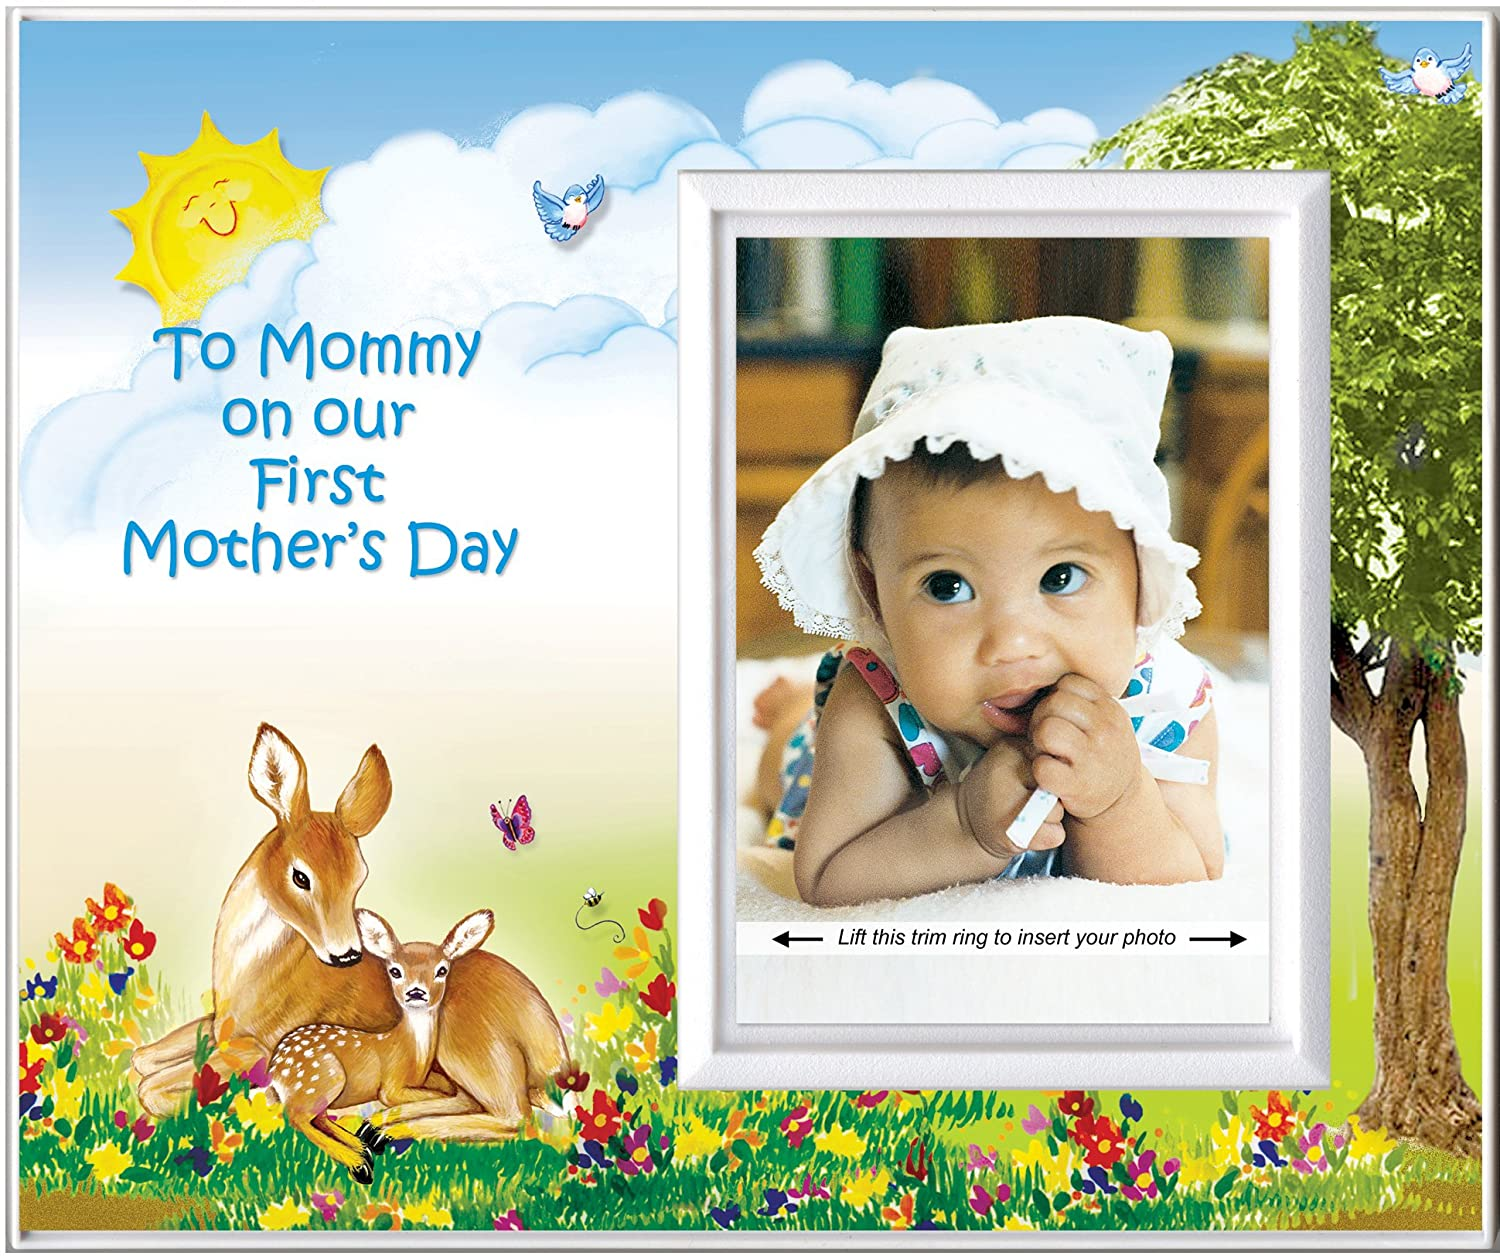 Amazon.com : First Mother\'s Day Picture Frame Gift | Holds 3.5"|1500|1256|?|1c711cb0137c85438381ca4867ed7755|False|UNLIKELY|0.34841930866241455